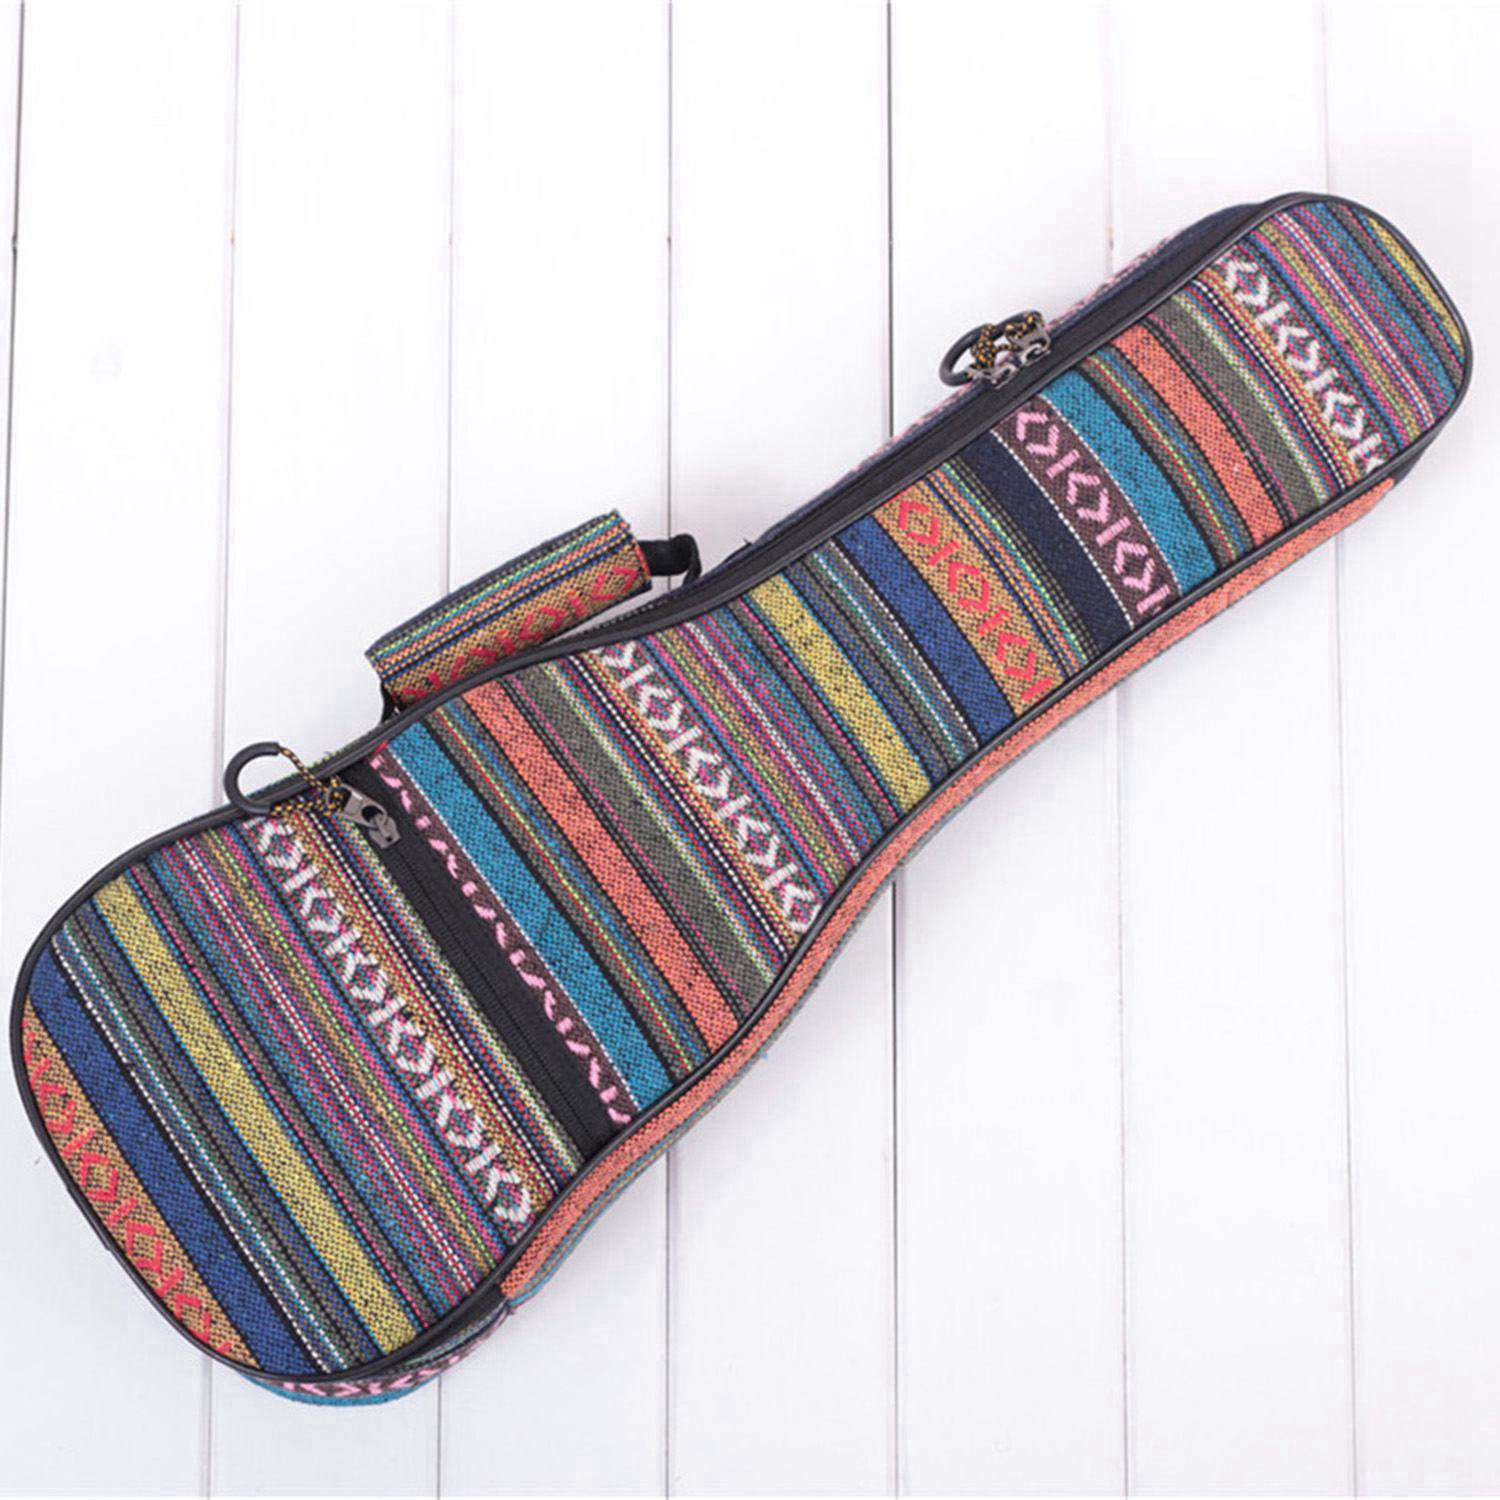 21inch Padded Cotton Folk Portable Bass Guitar Bag Ukulele Case Box Cover Guitar Backpack with Double Strap